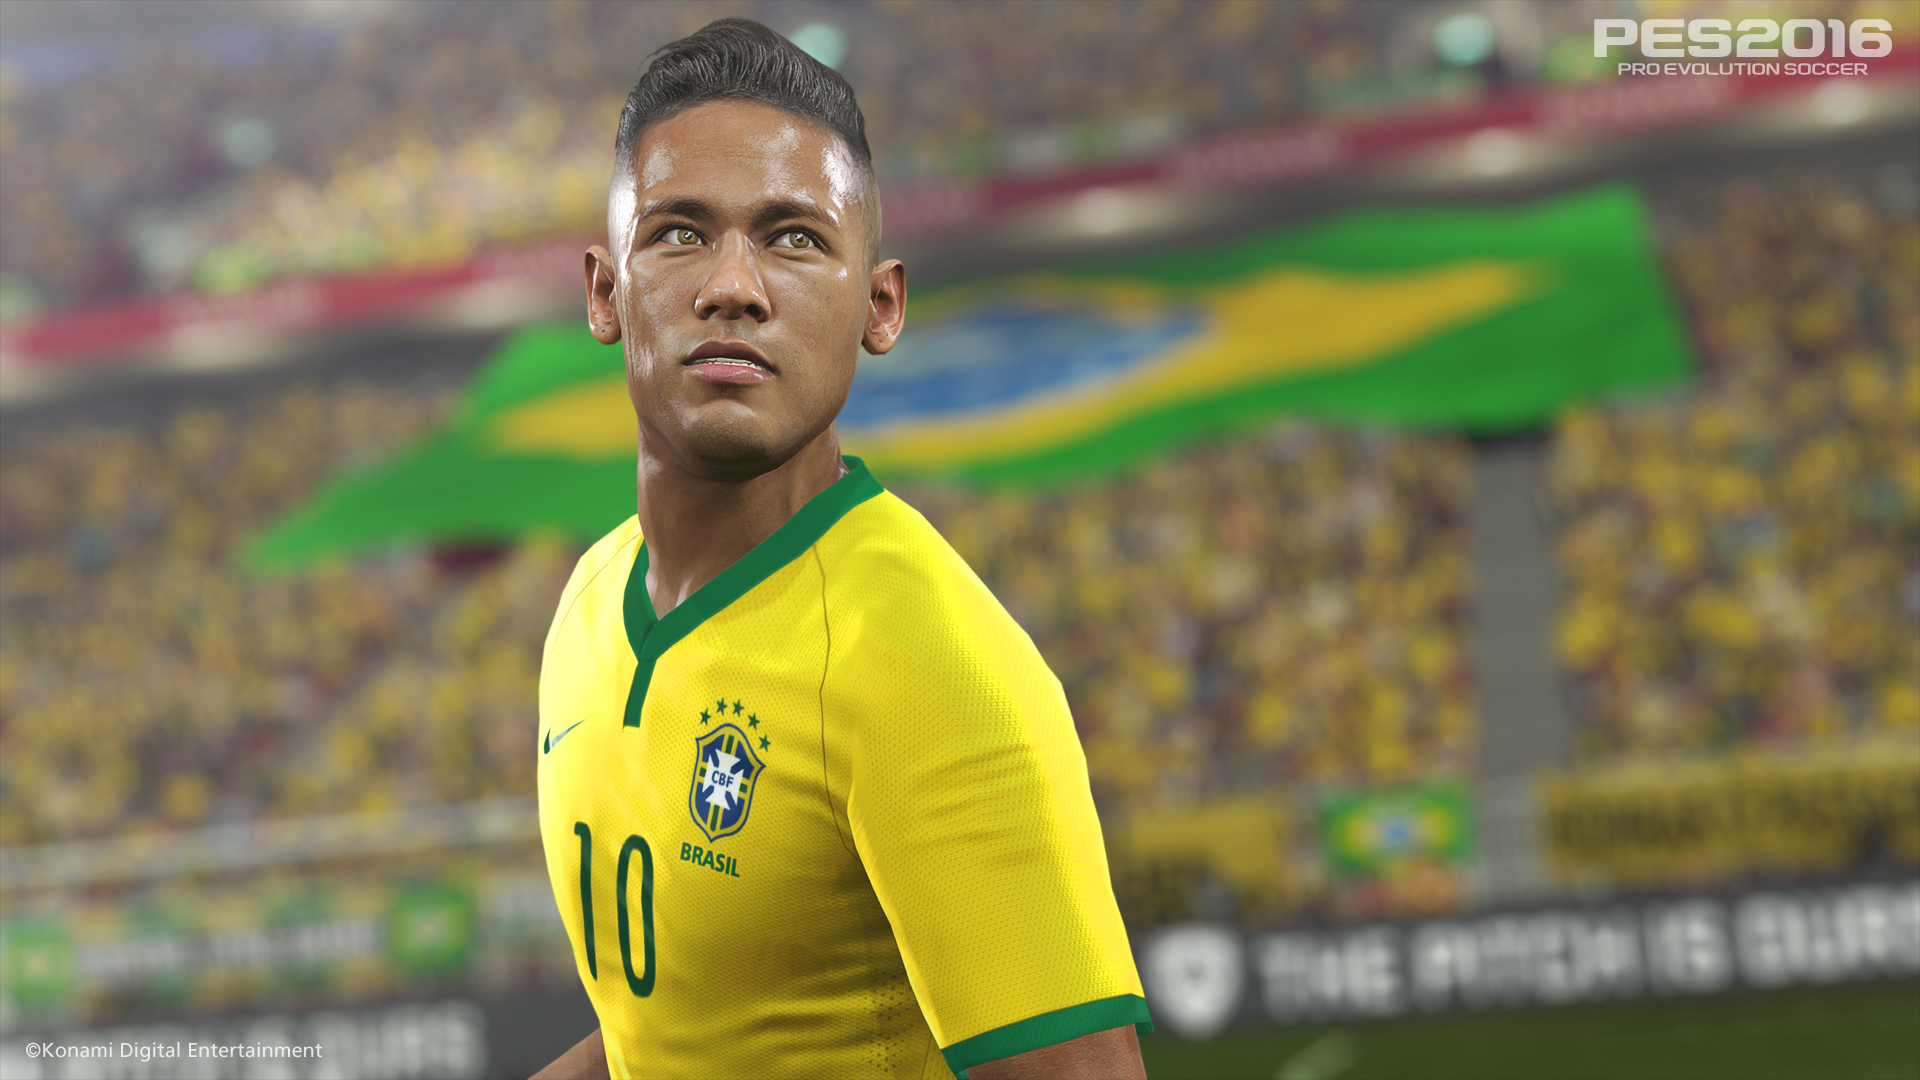 The player models in PES 2016 look fantastic.